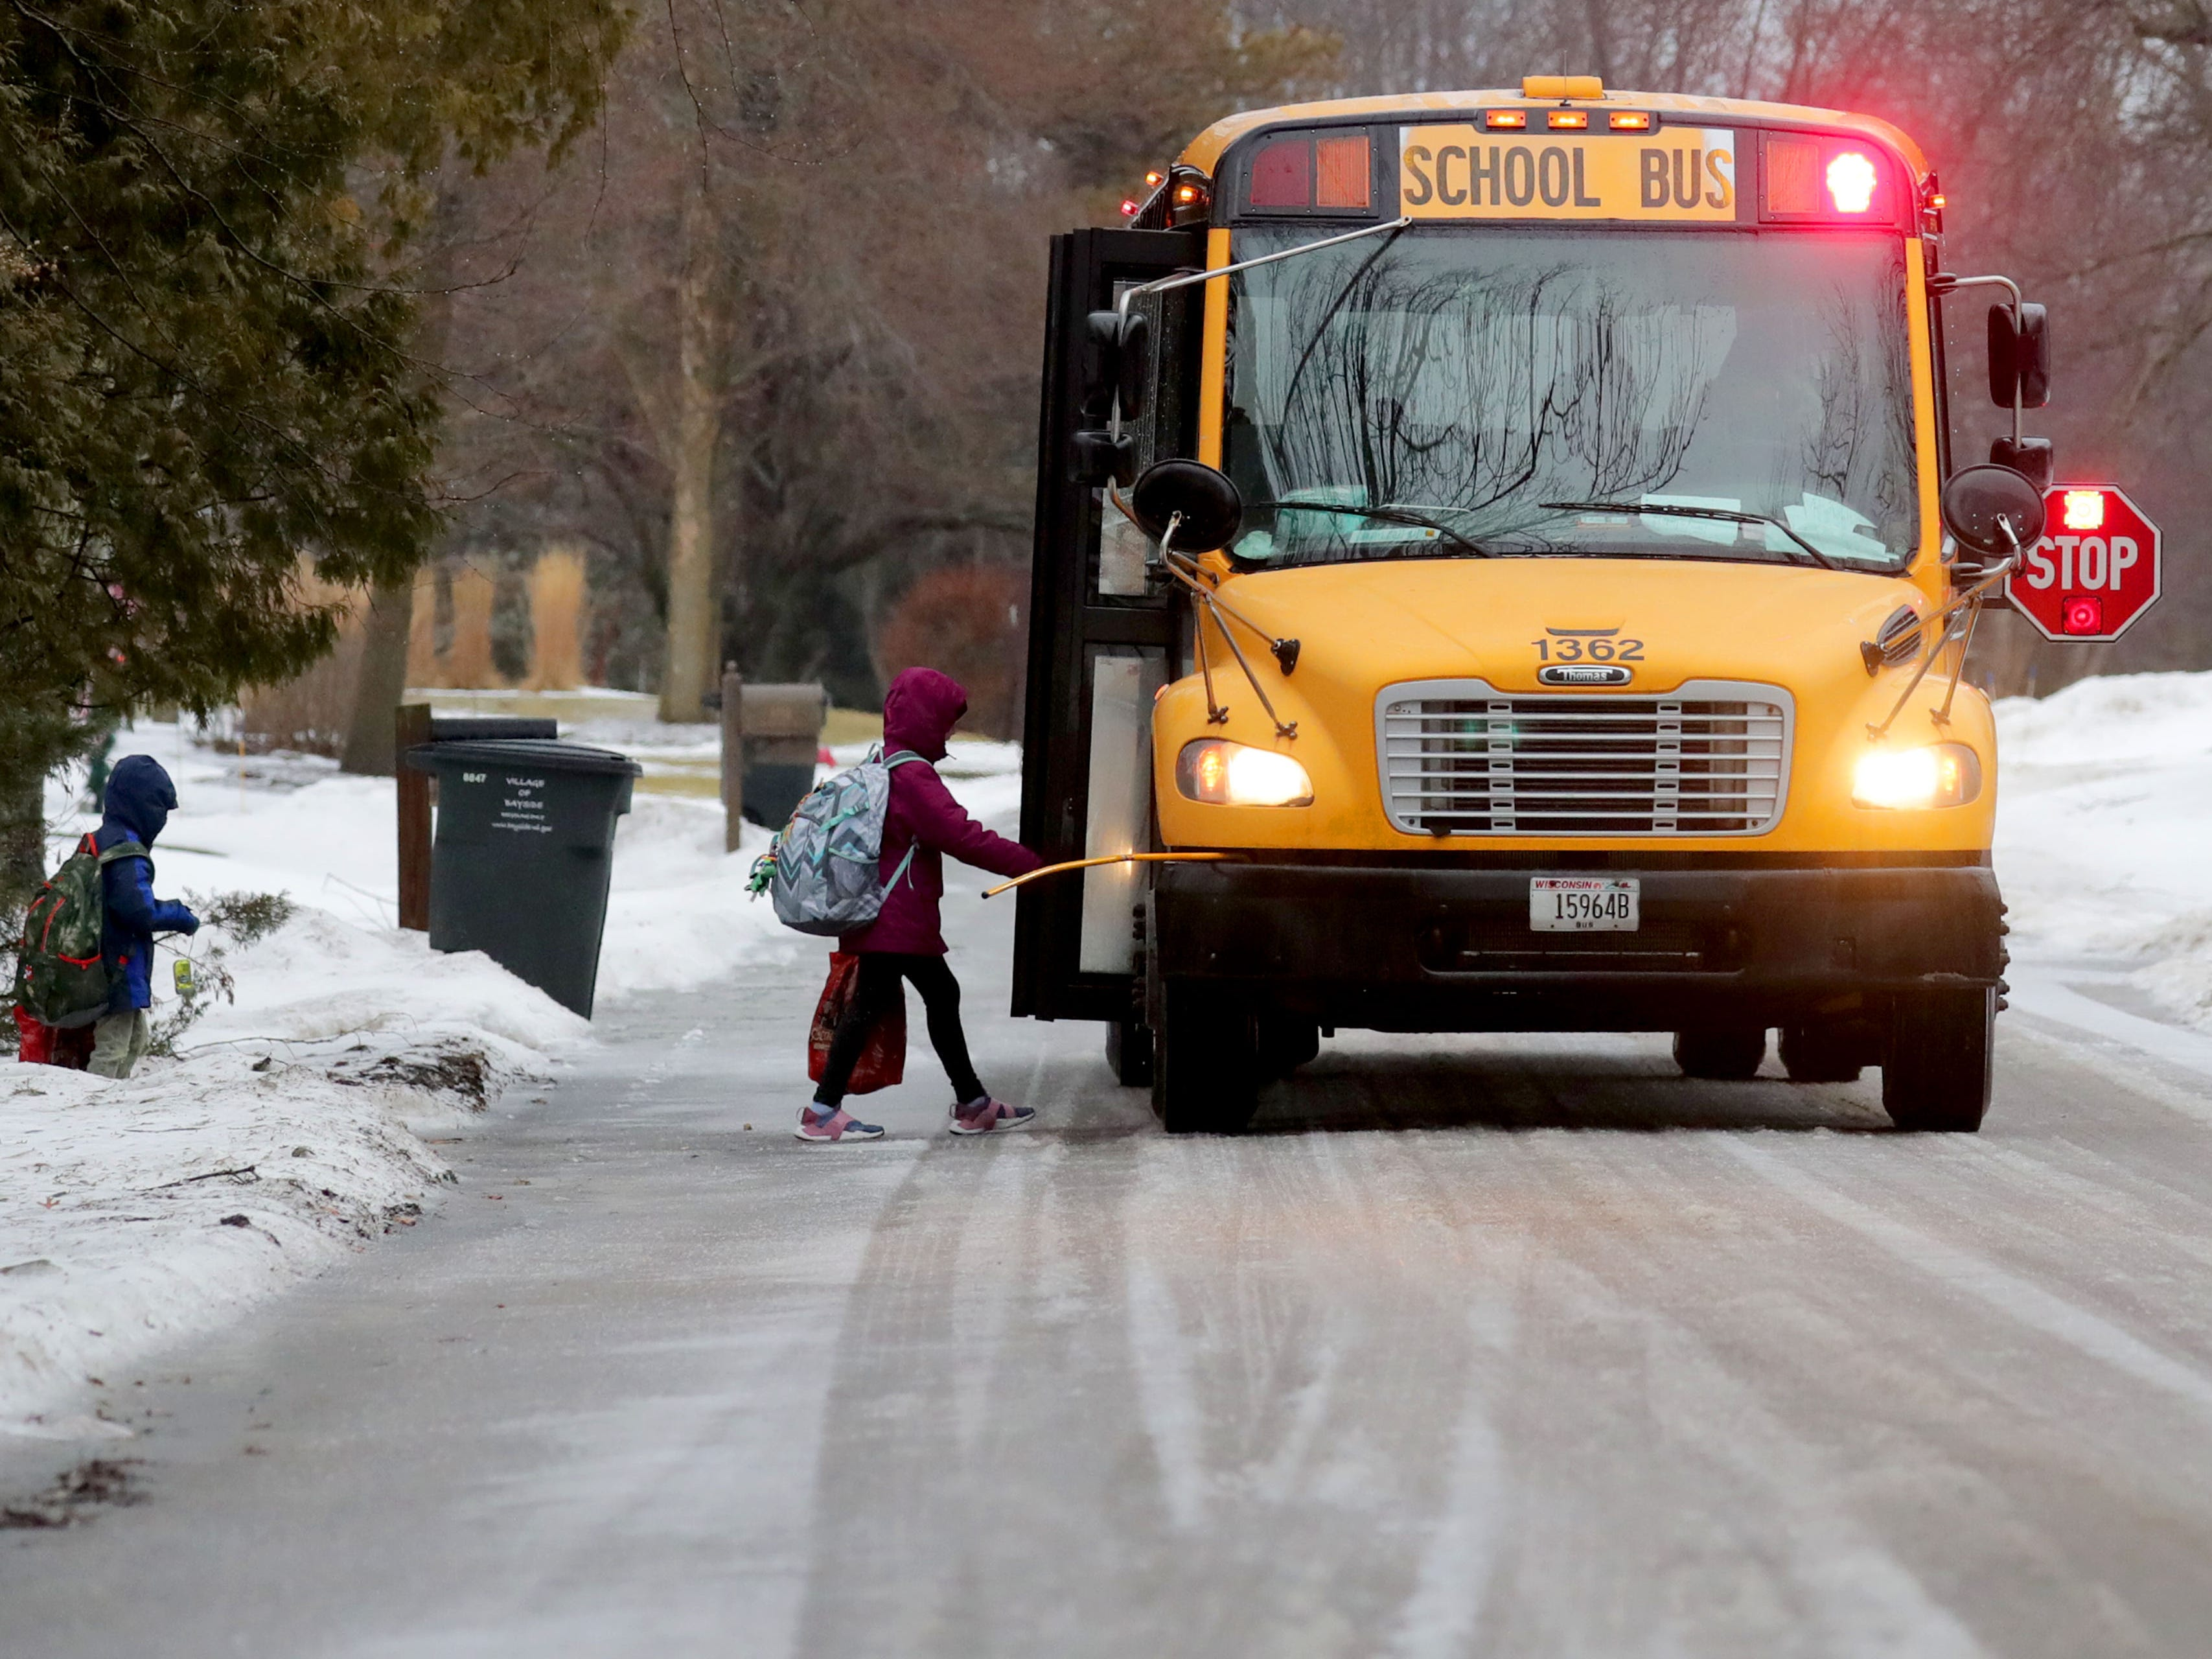 A child boards a school bus on an icy North Bayside Drive in Bayside on Wednesday, Feb. 6, 2019. While freezing rain made roads and sidewalks a slushy mess Wednesday, the Milwaukee metro area is in for another round of icy weather that is expected to make the commutes hazardous Wednesday night and Thursday morning. A winter weather advisory for Ozaukee and Washington counties as well as the Madison area has been issued for 6 p.m. Wednesday to 6 p.m Thursday. Total snow accumulations of up to 2 inches and ice accumulations of two-tenths to three-tenths of an inch are expected.